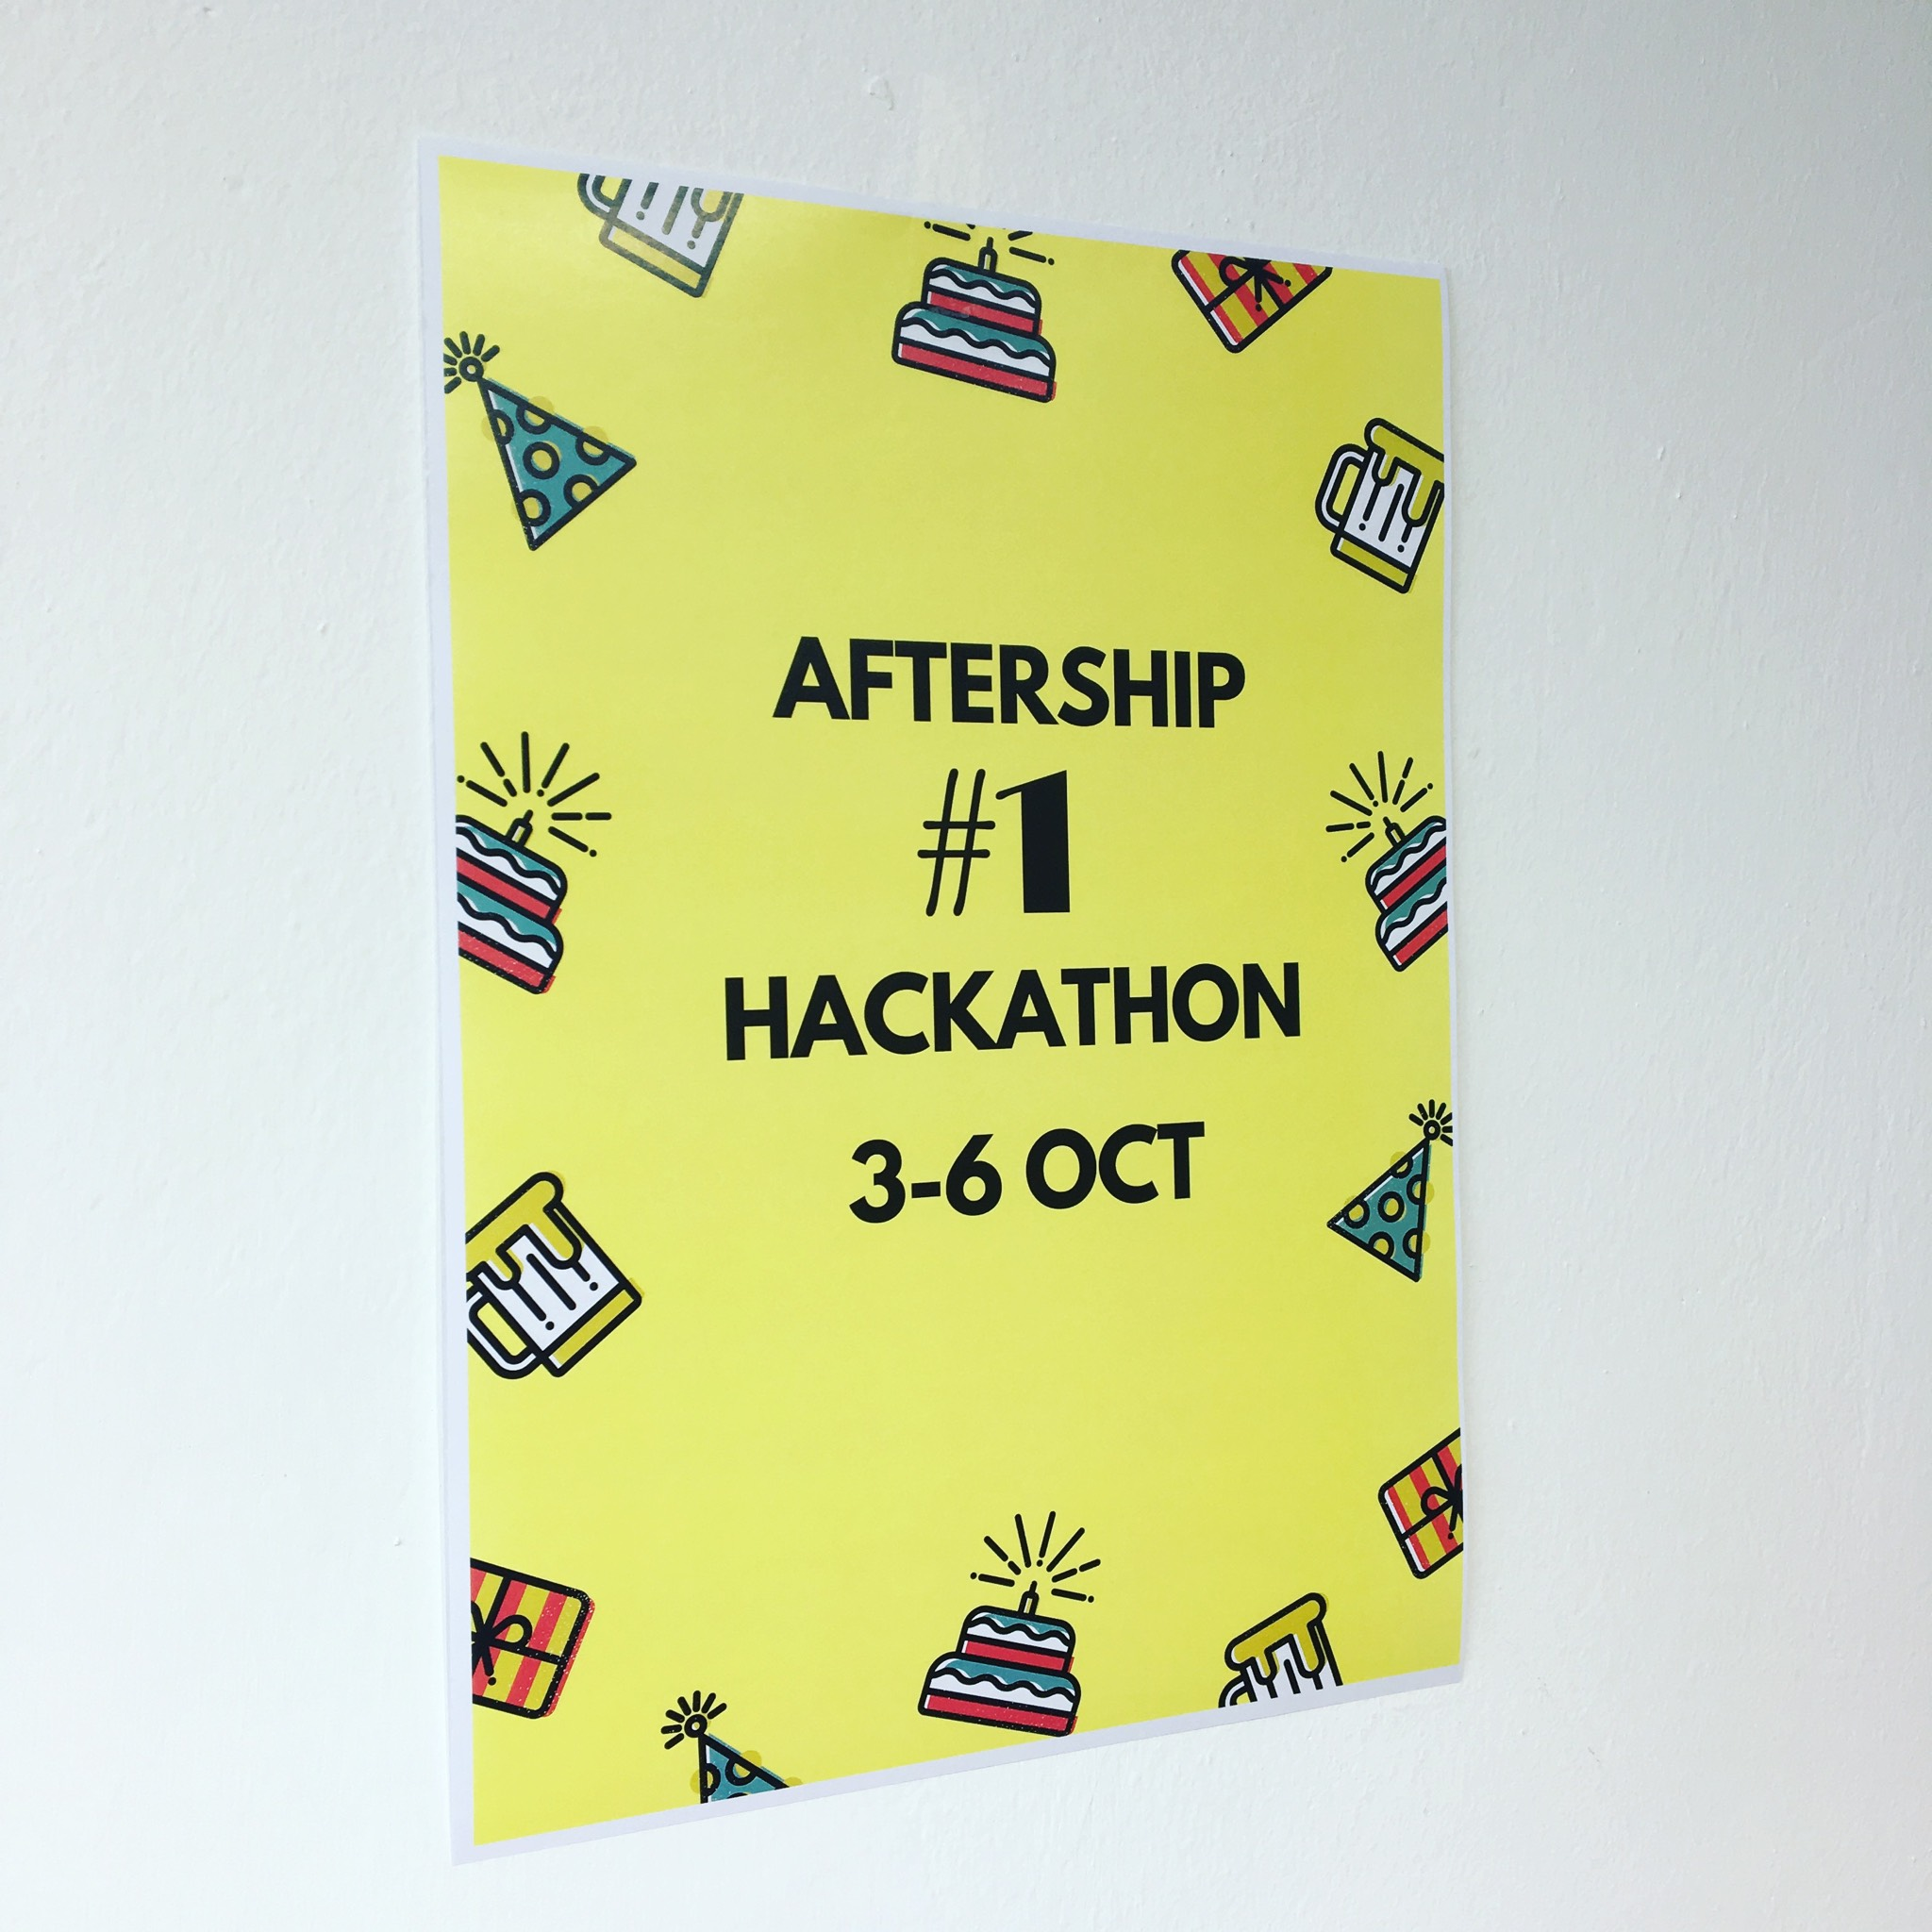 We Organised a Hackathon: Here's What We Learned